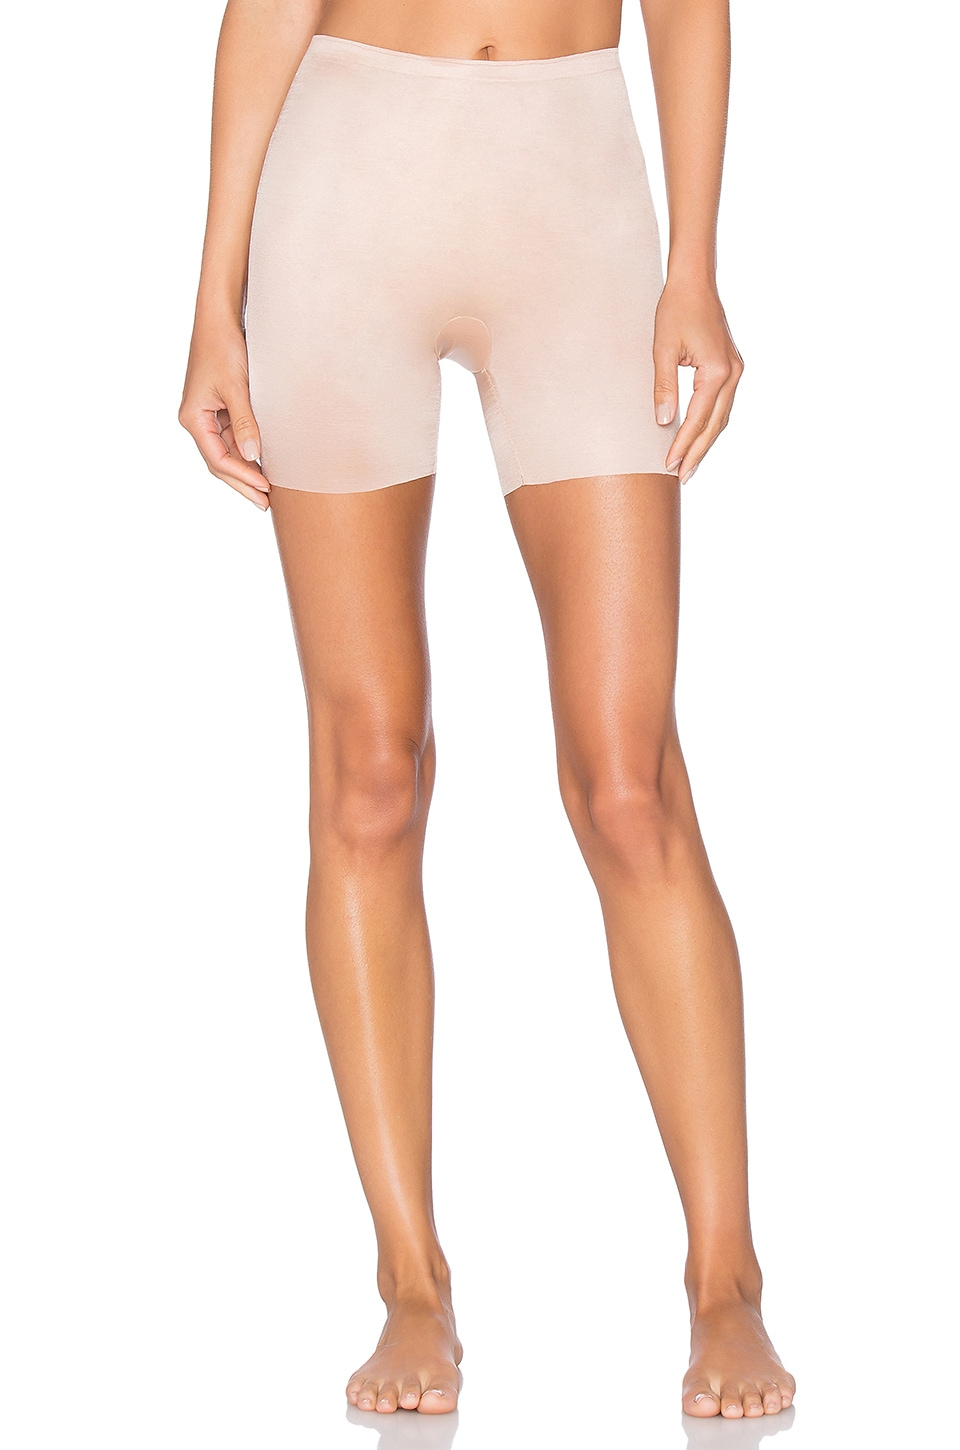 SPANX Skinny Britches Mid Thigh Short in Naked 2.0